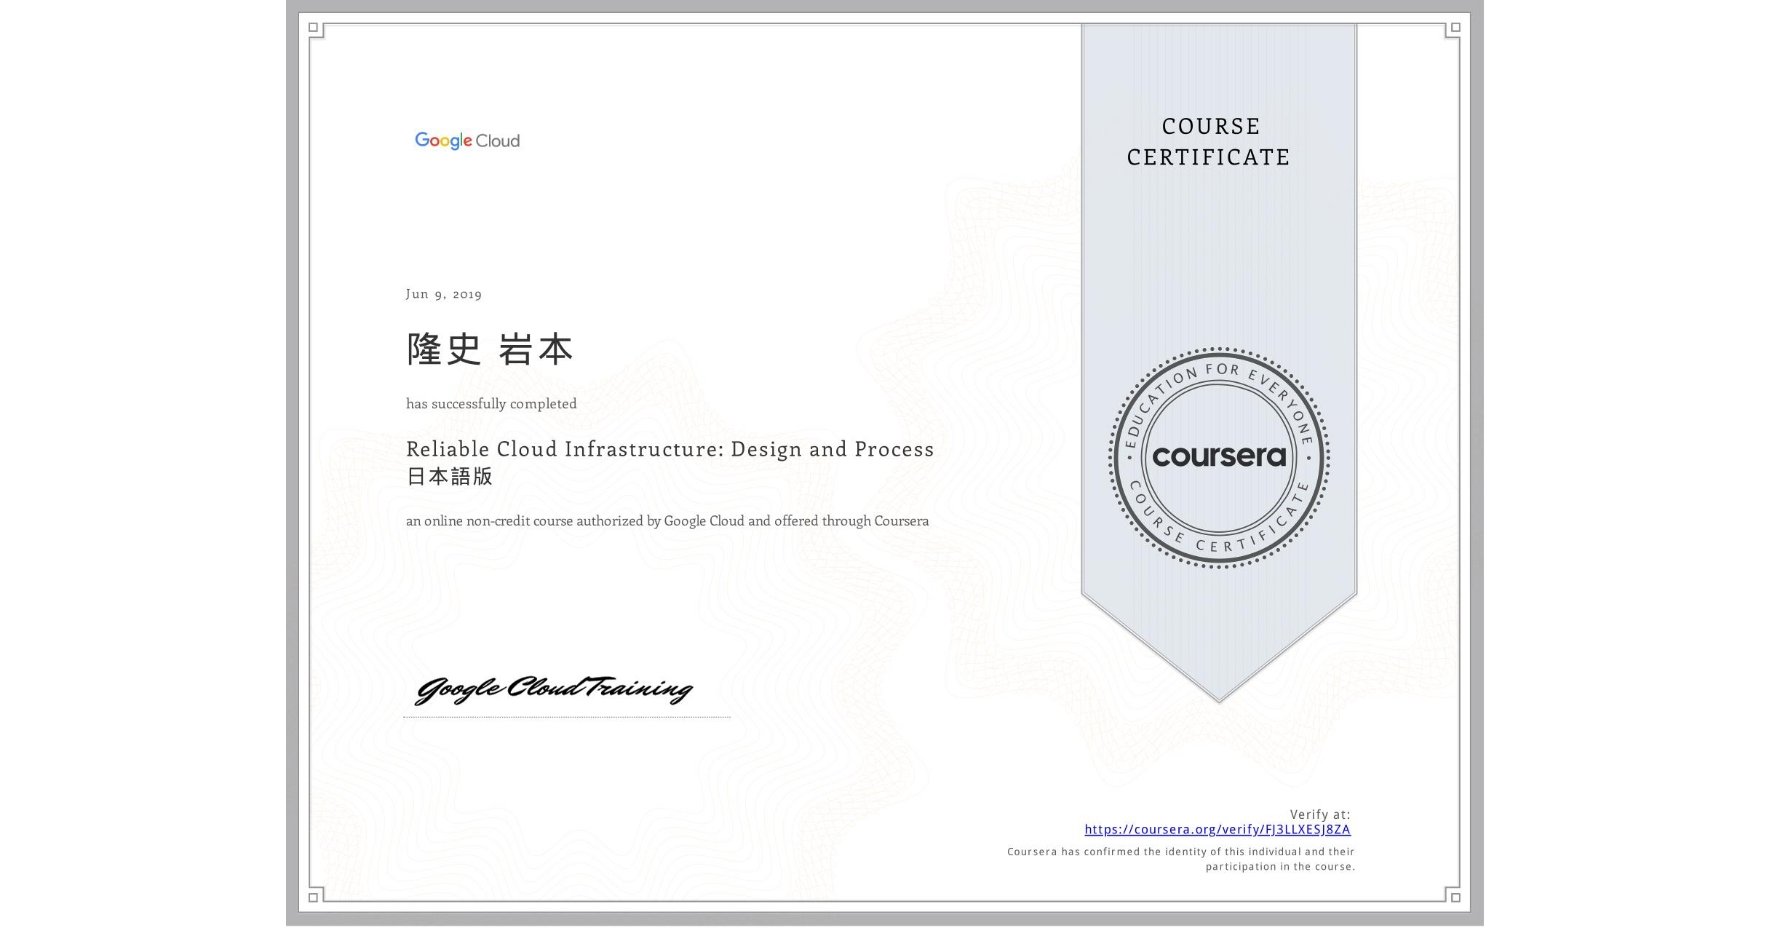 View certificate for 隆史 岩本, Reliable Cloud Infrastructure: Design and Process 日本語版, an online non-credit course authorized by Google Cloud and offered through Coursera